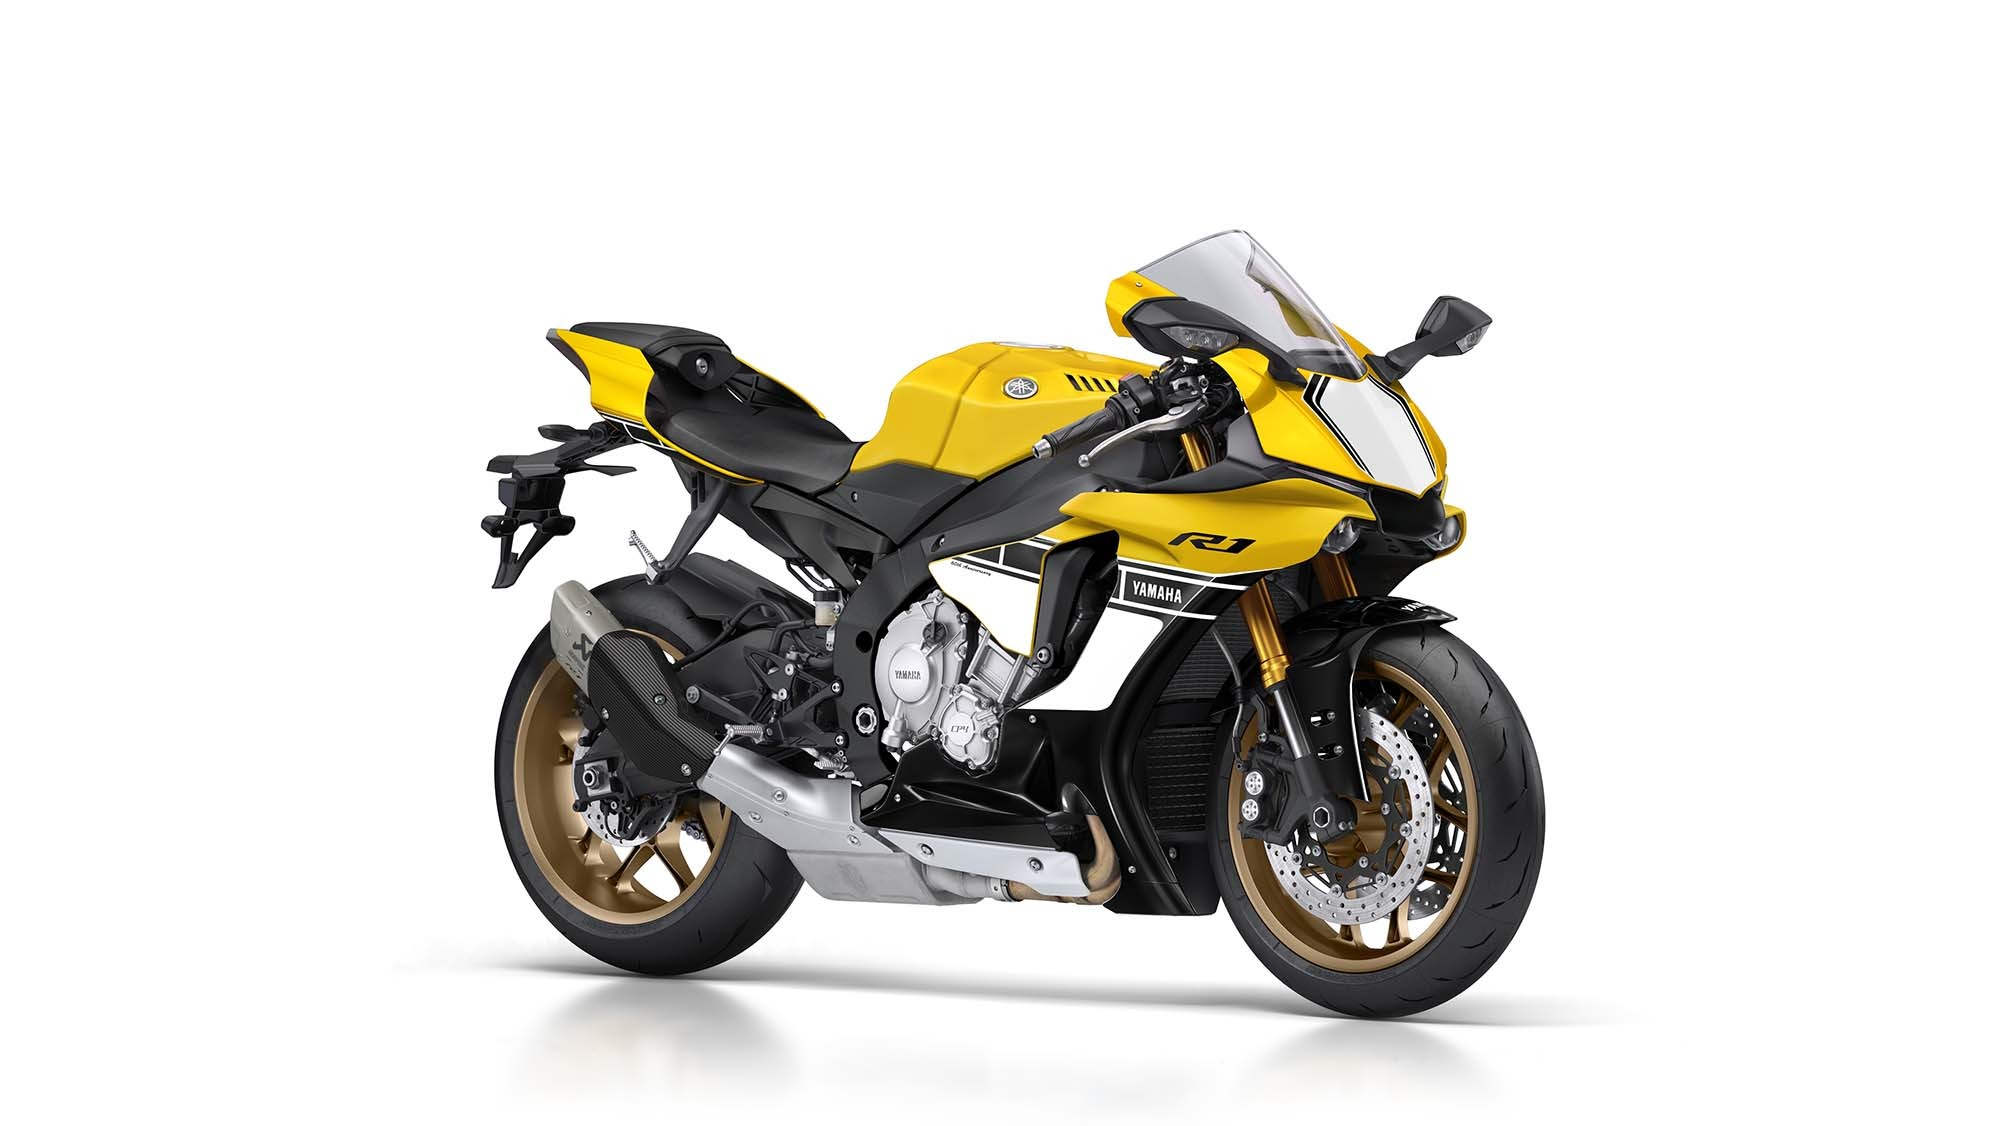 yamaha-yzf-r1-60th-anniversary-edition-shows-a-timeless-yellow-black-livery-photo-gallery_6.jpg